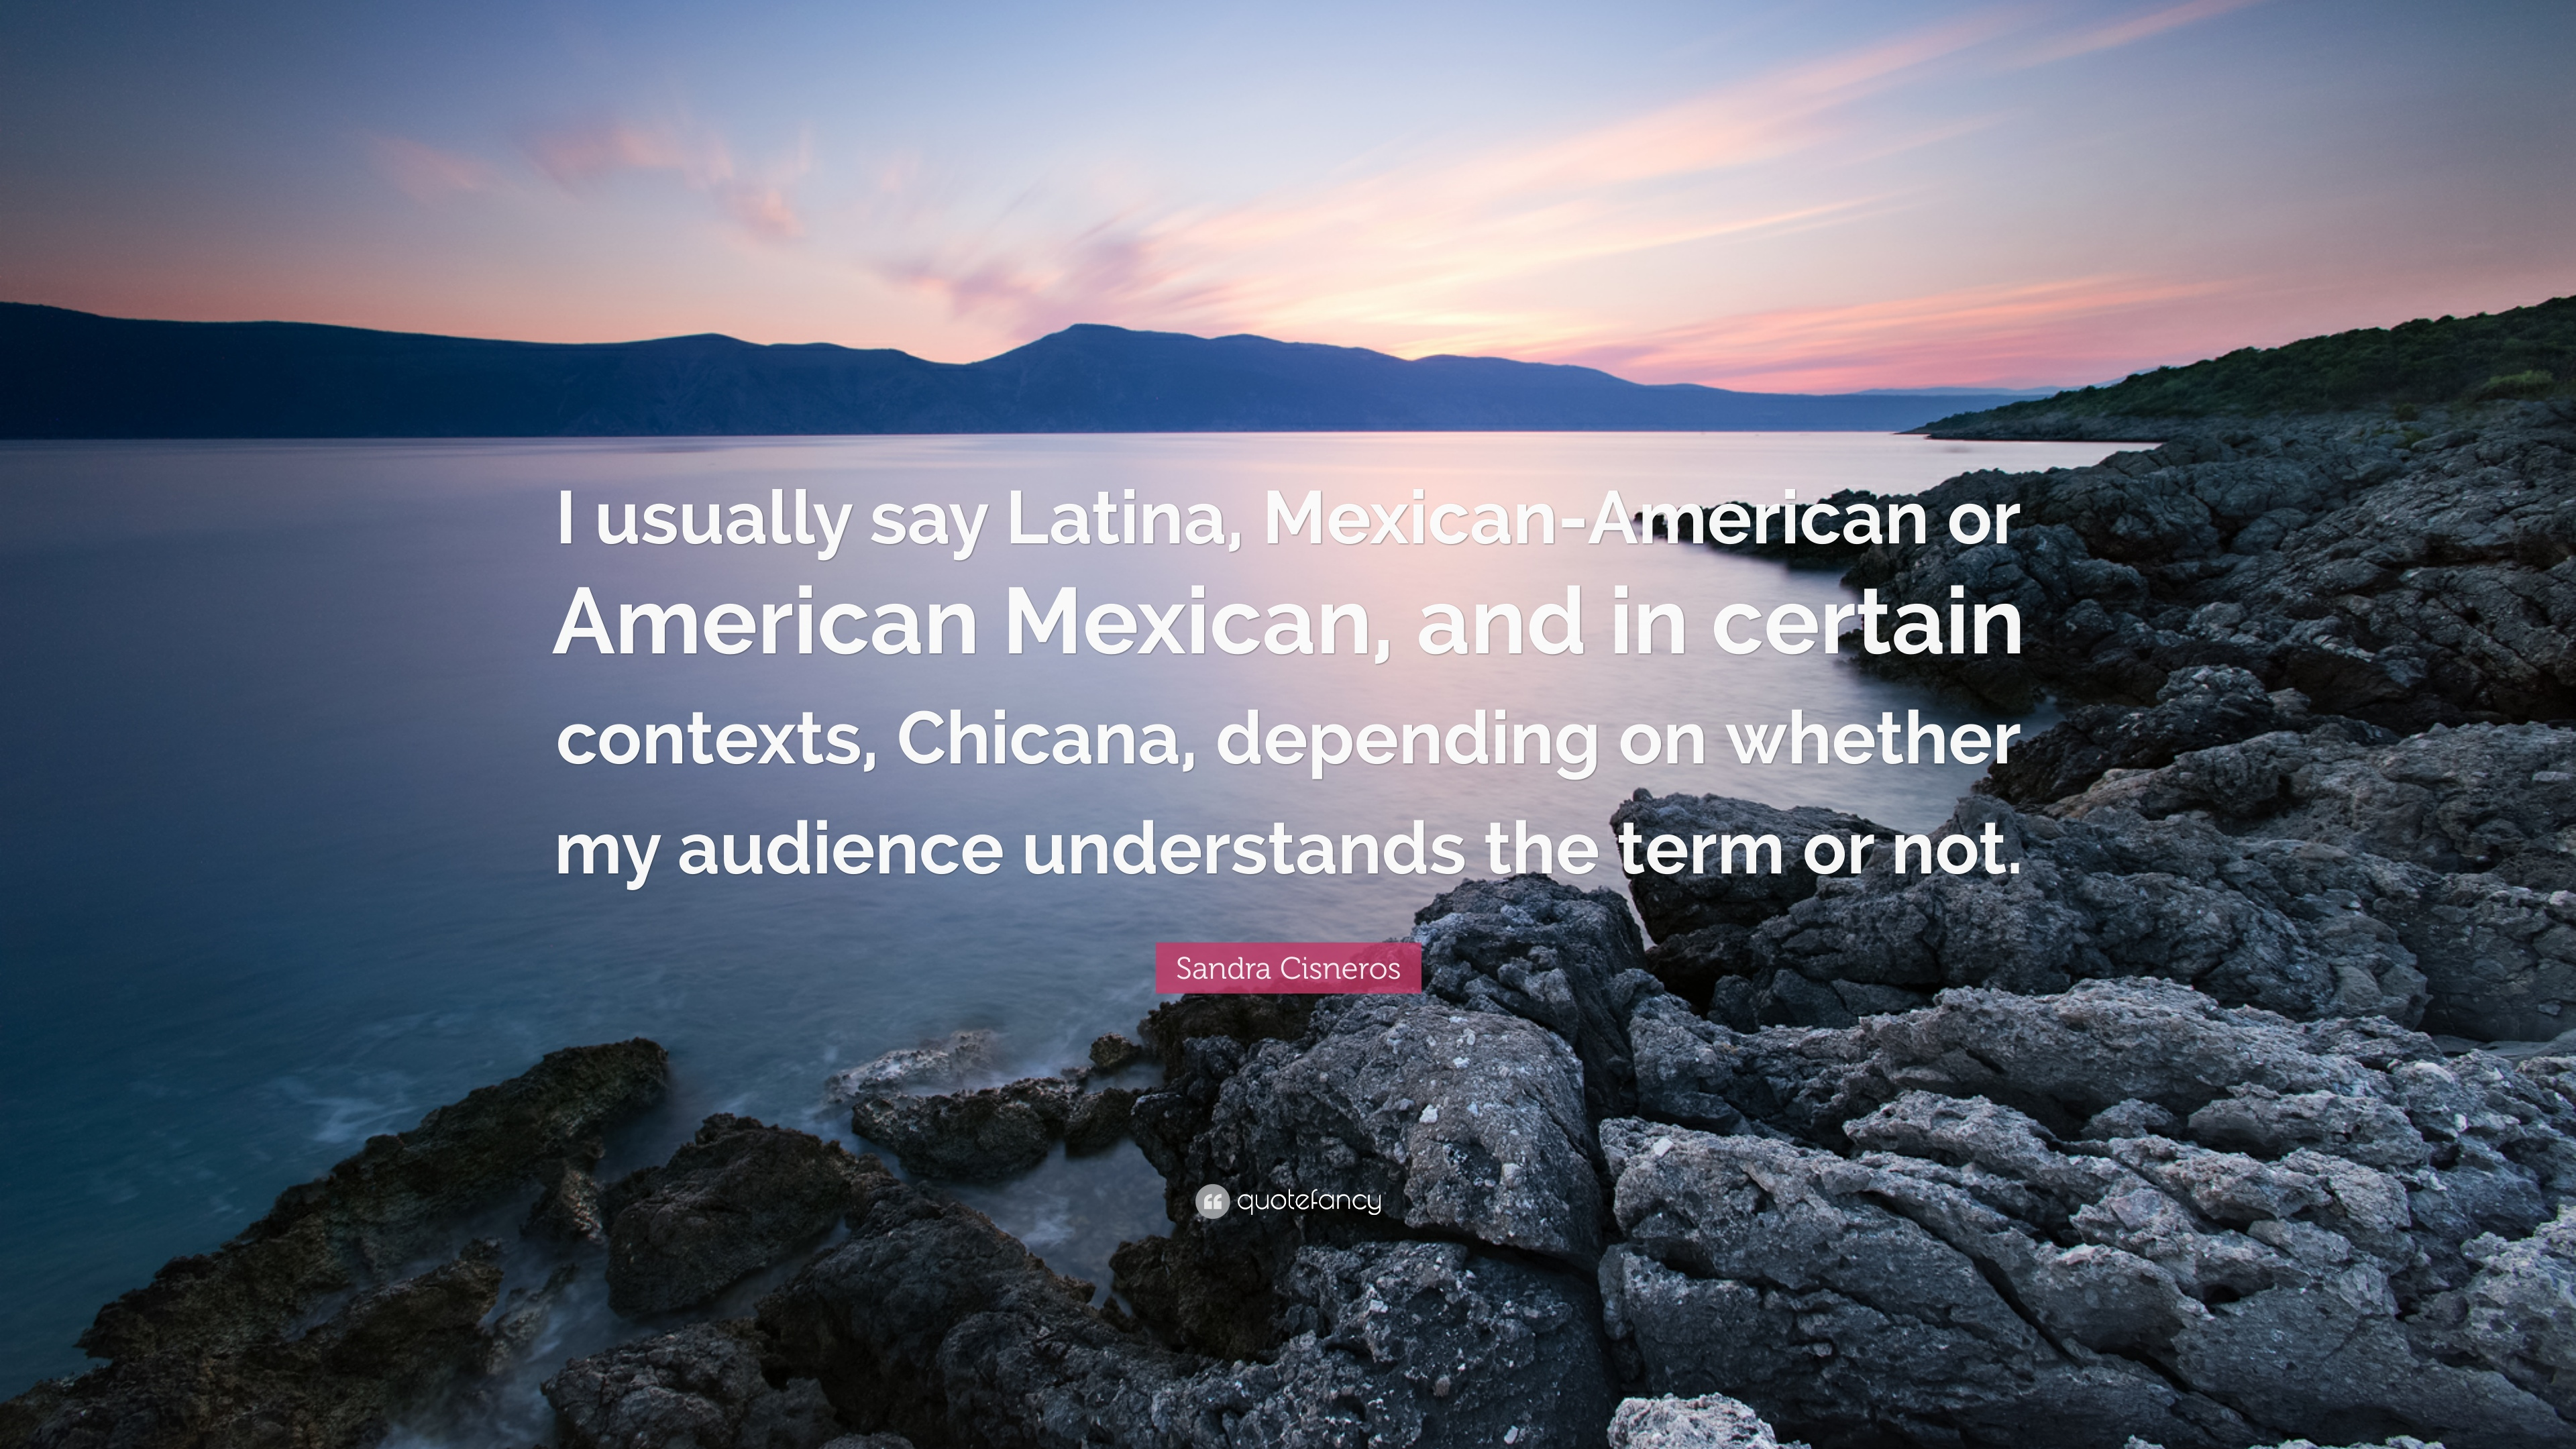 Sandra Cisneros Quote I Usually Say Latina Mexican American Or American Mexican And In Certain Contexts Chicana Depending On Whether My Au 7 Wallpapers Quotefancy